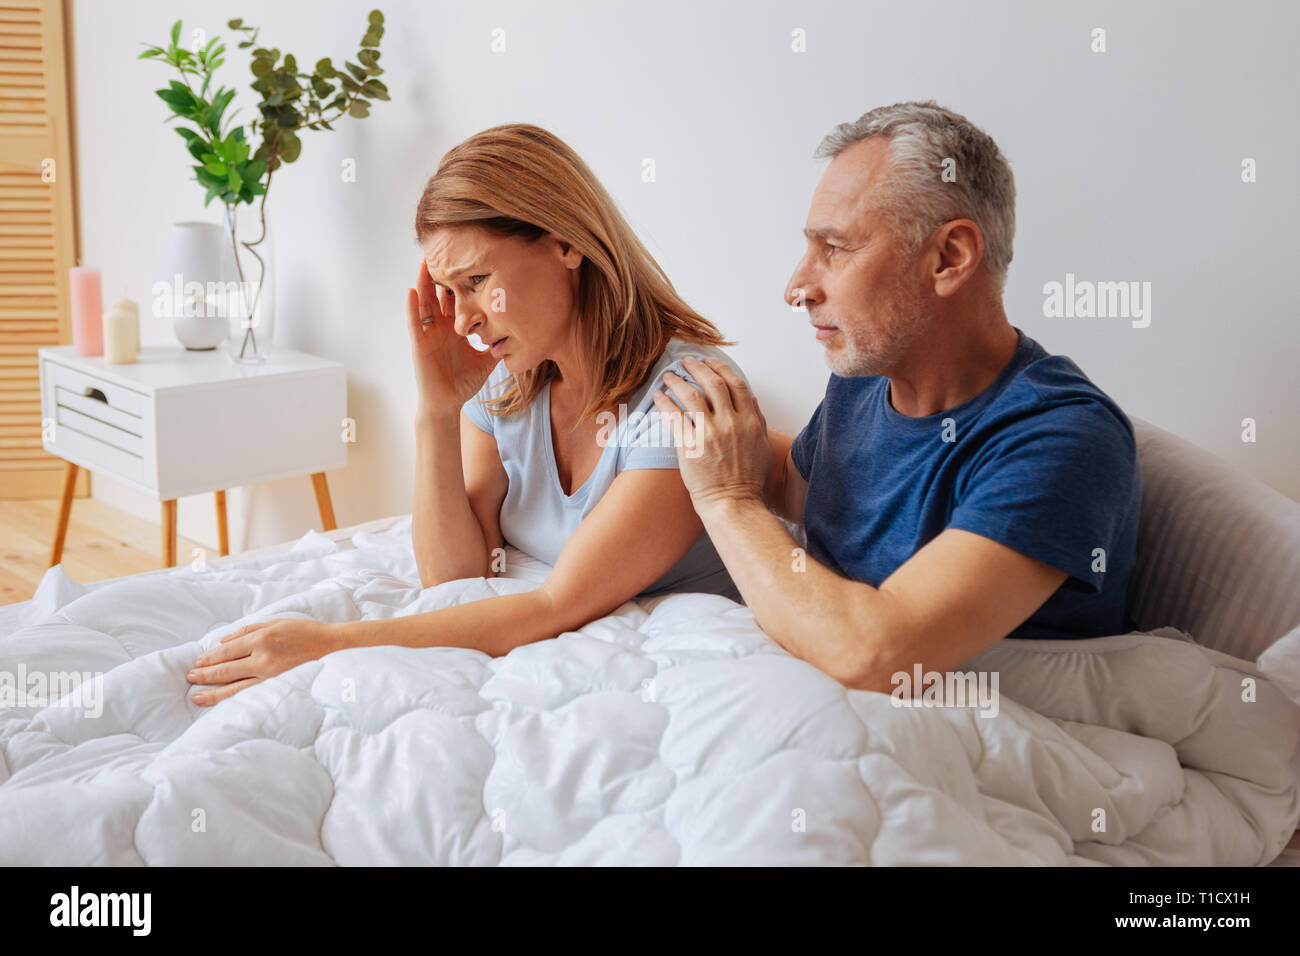 Blonde woman having headache after argument with husband - Stock Image